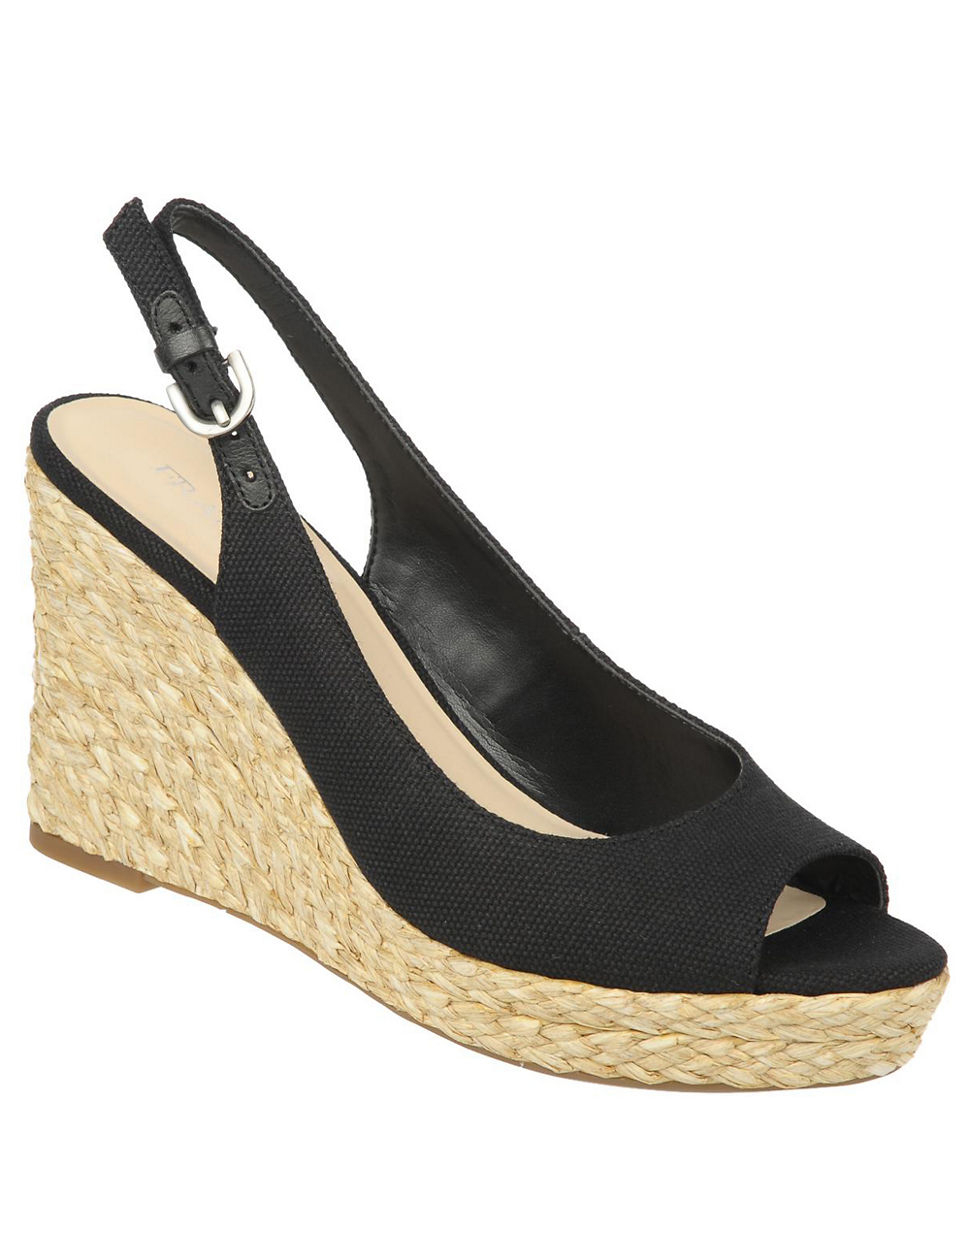 franco sarto rory canvas slingback wedge sandals in black